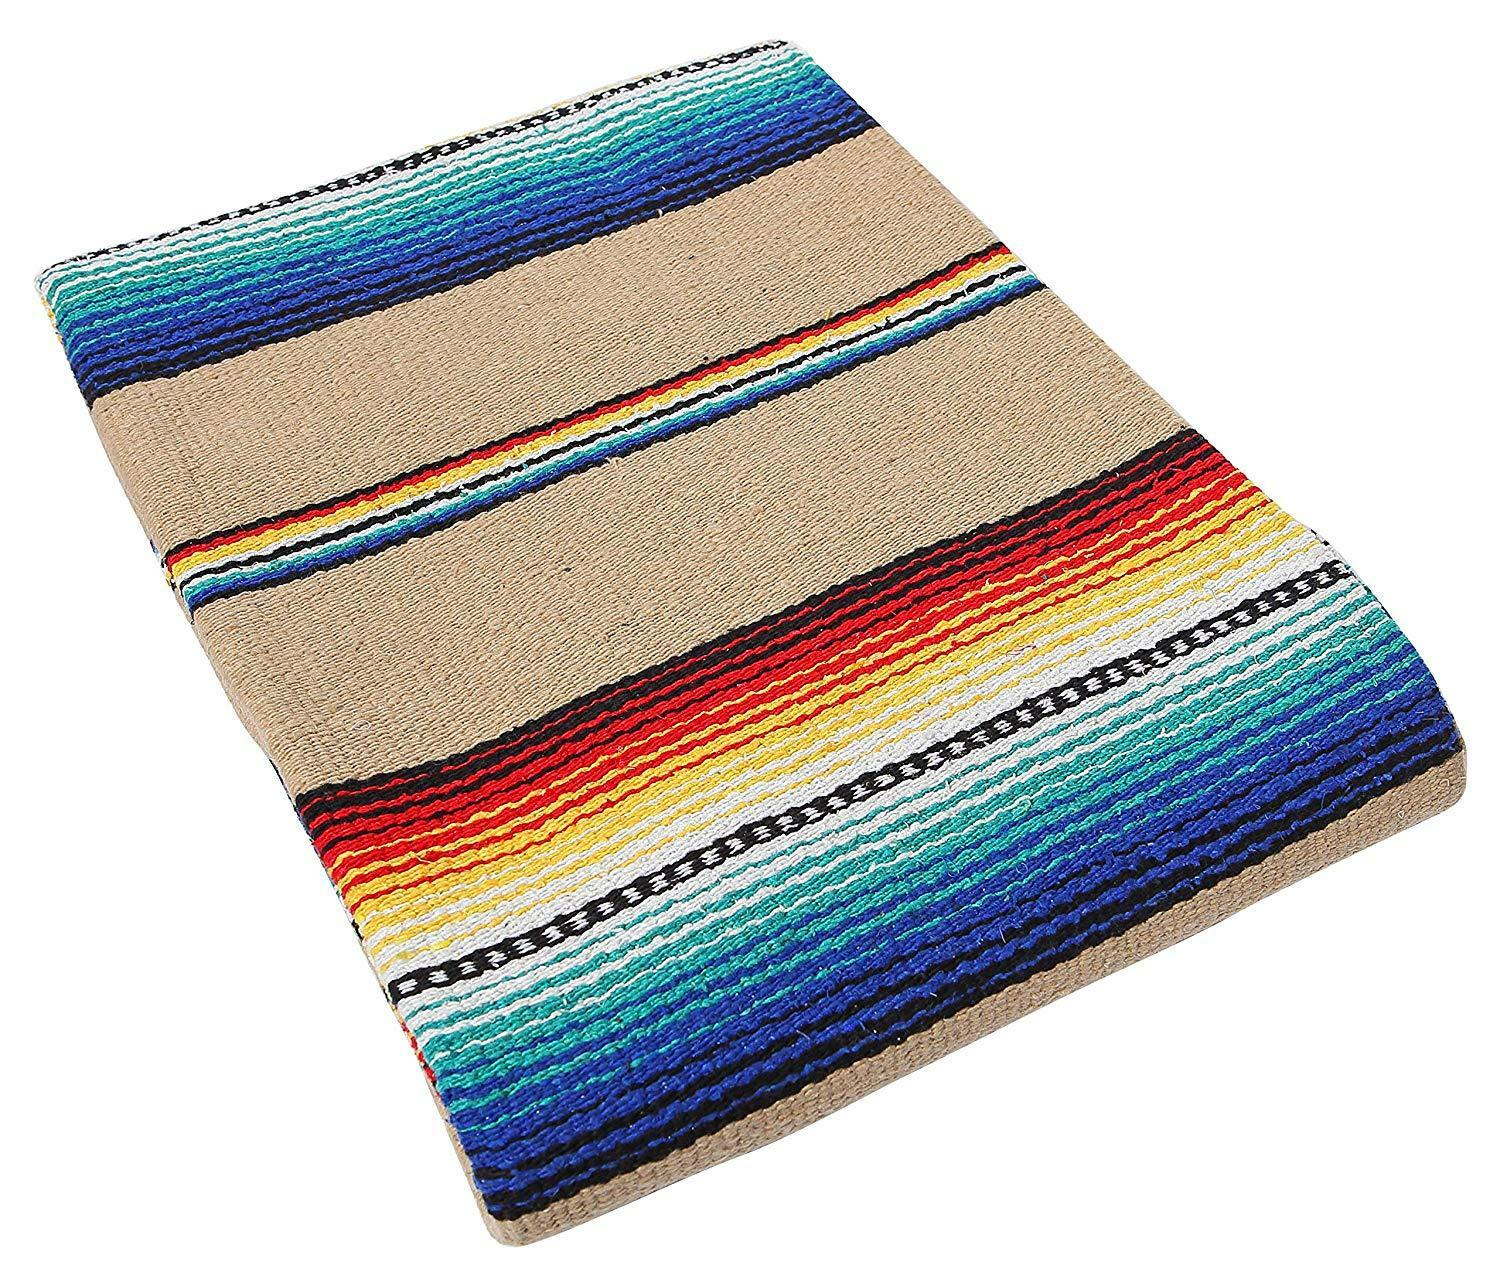 Old El Paso Blanket Throw Sarape Bed Cover Tan Mexico